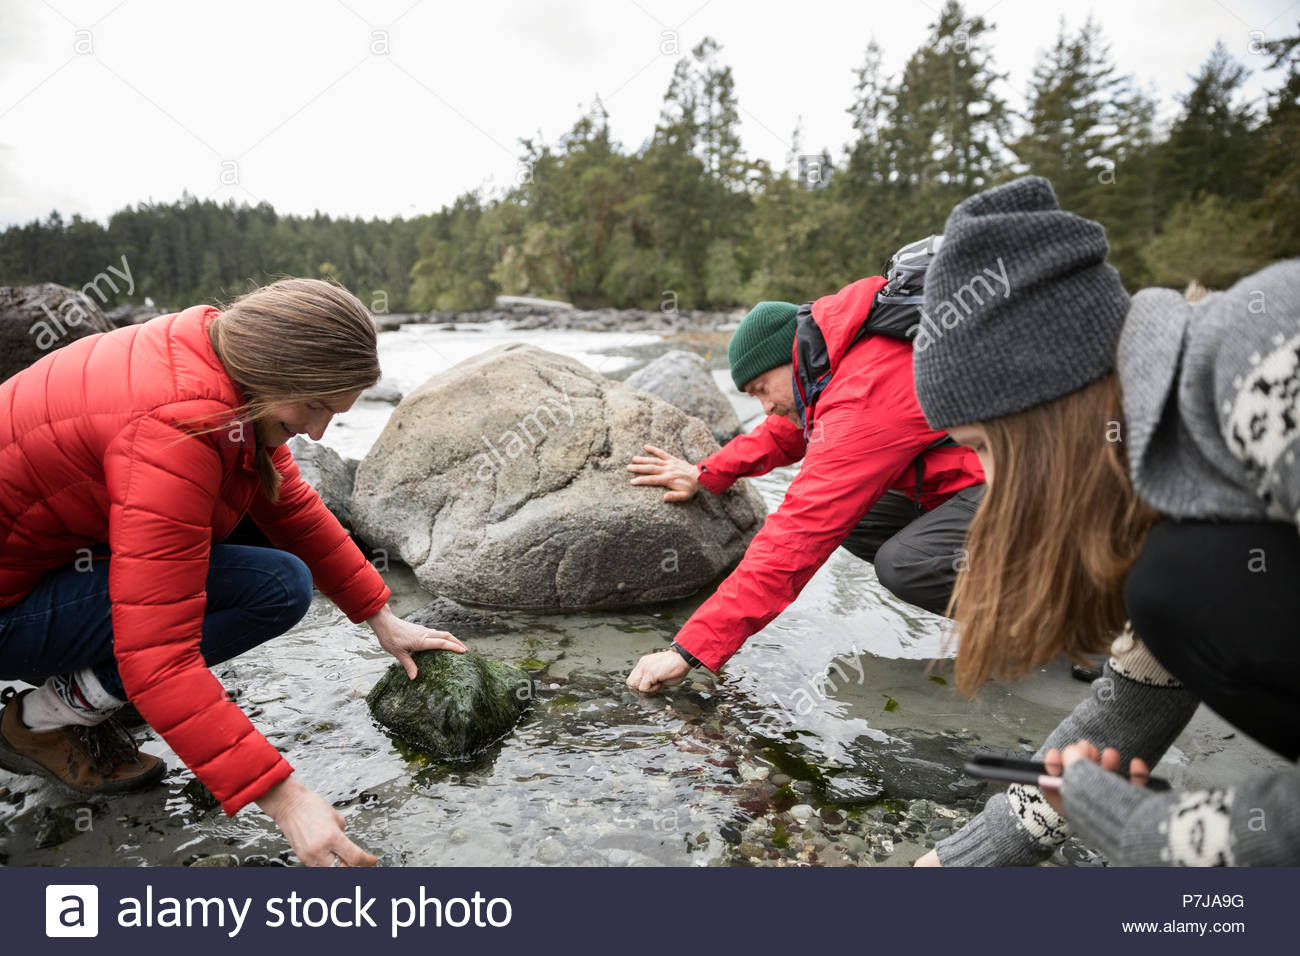 Family exploring in tidal pool on beach - Stock Image